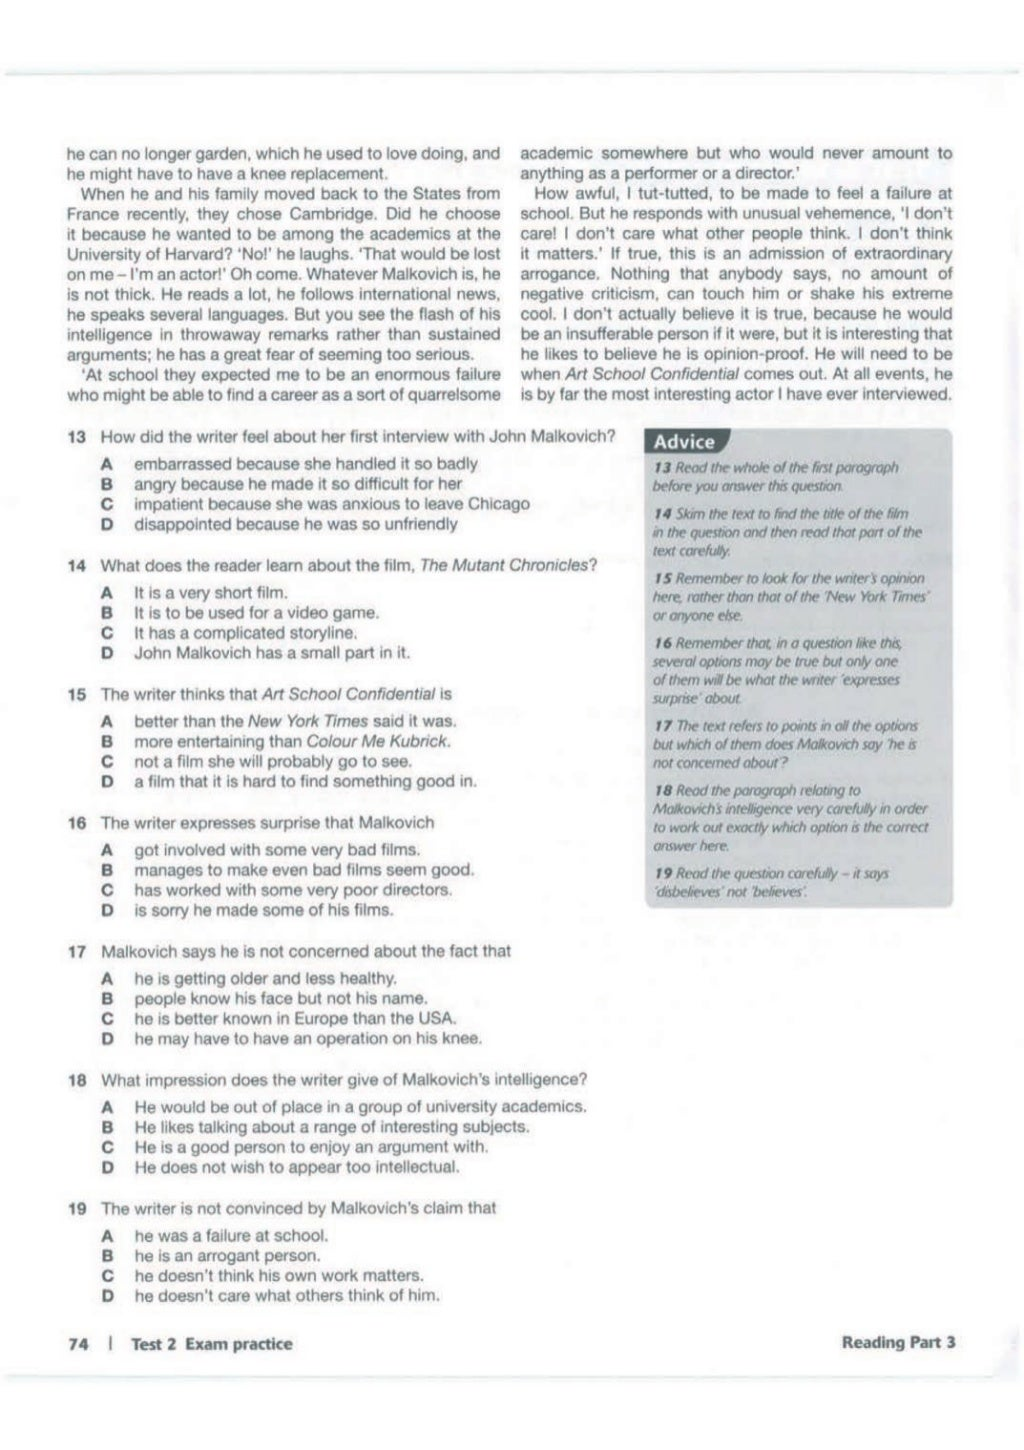 Advanced trainer 6 practice tests with answers book4joy (1) page 75